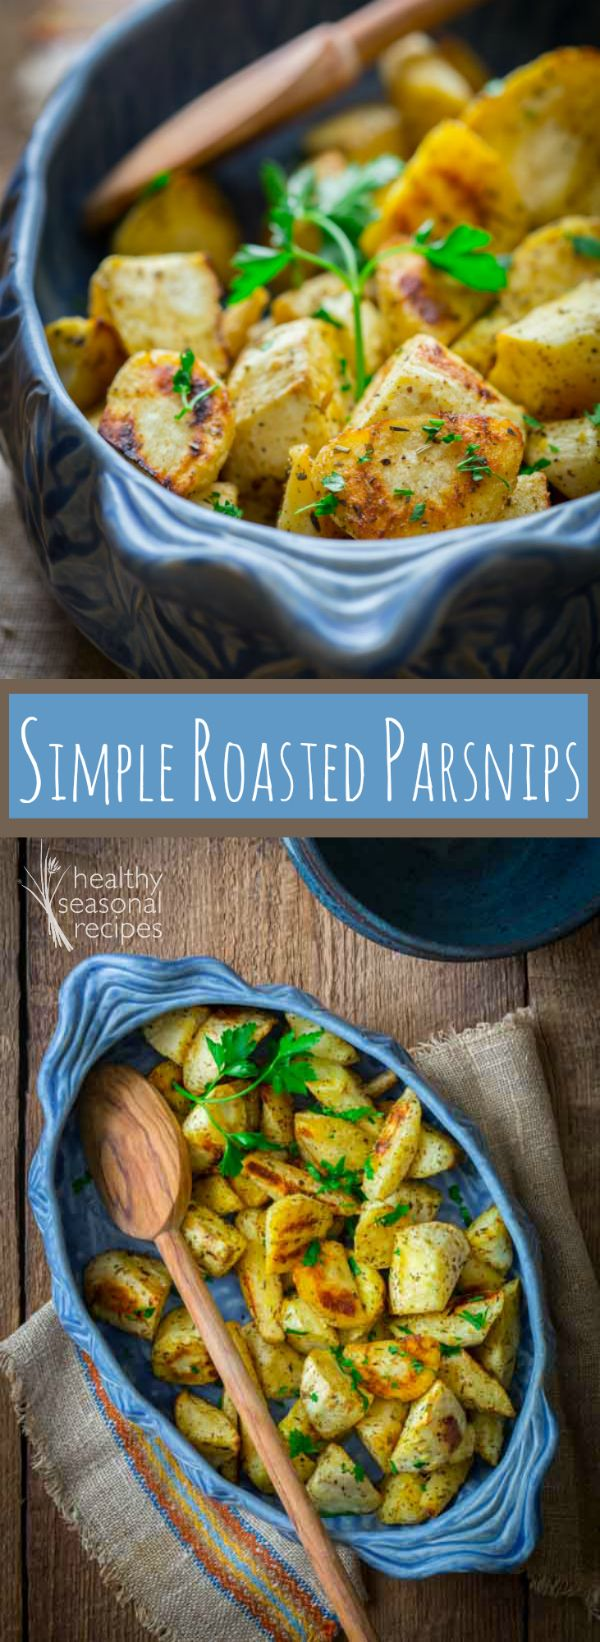 Blog post at Healthy Seasonal Recipes : I always thought of parsnips as being a fall vegetable. I was sort of right since that's when they stop growing. But I was also wrong too.[..]